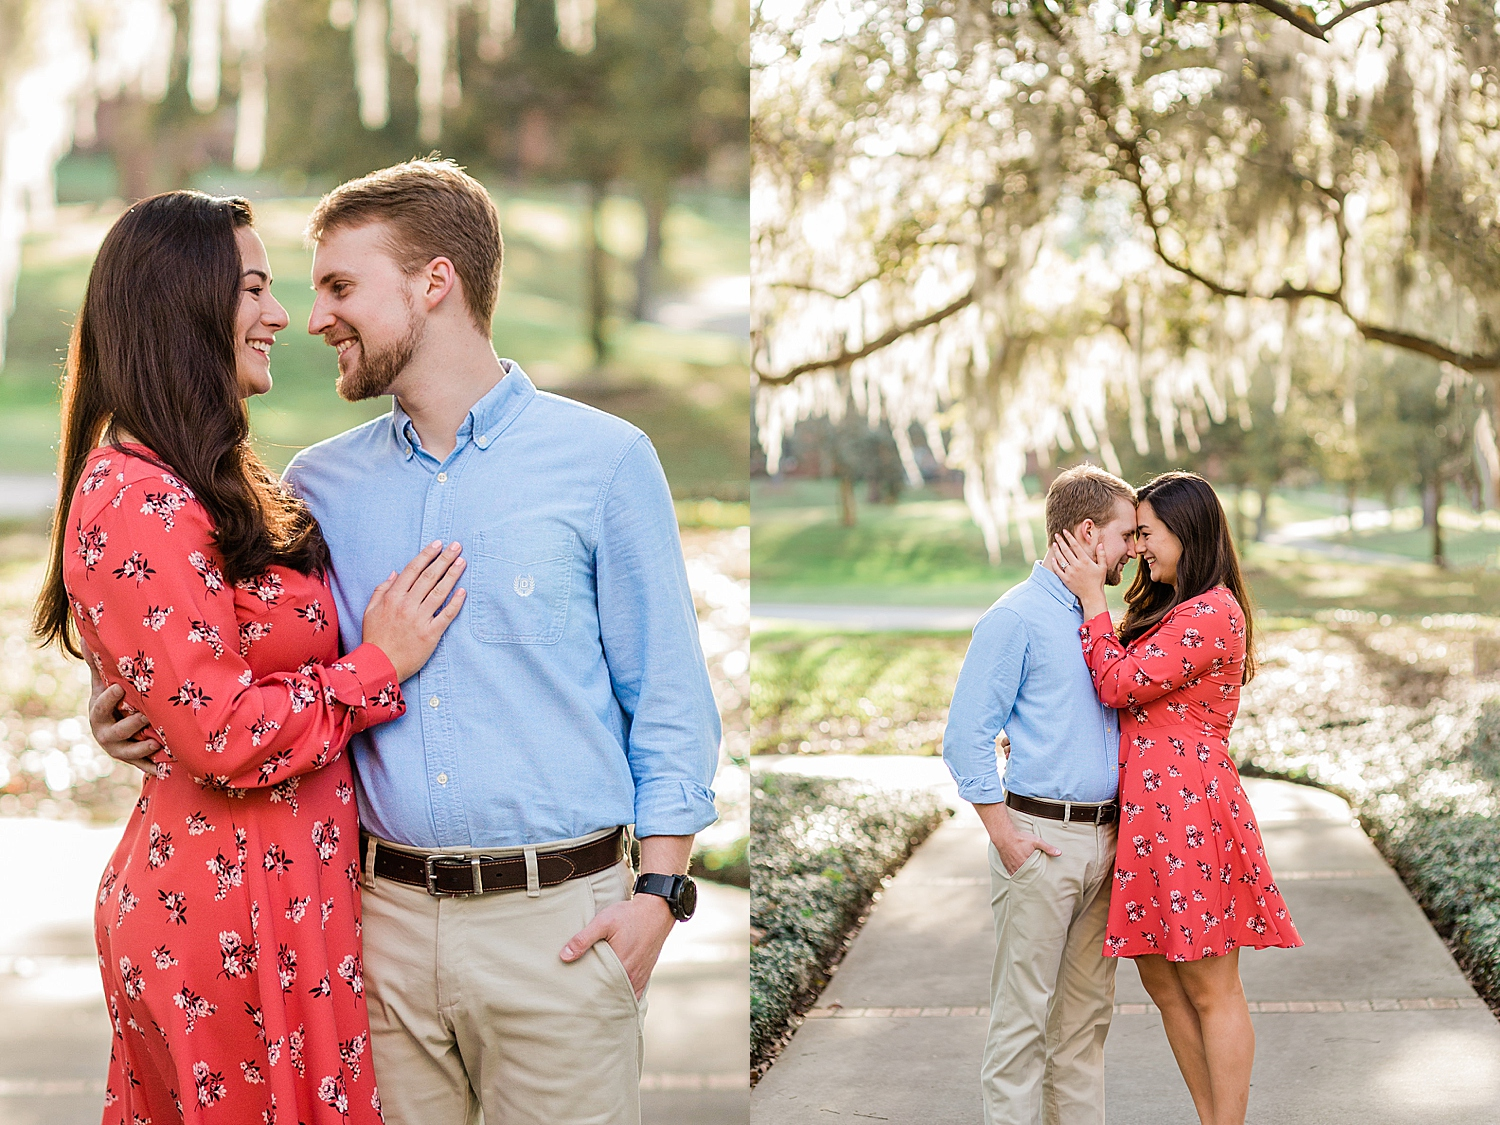 Couple embraces and smiles at each other